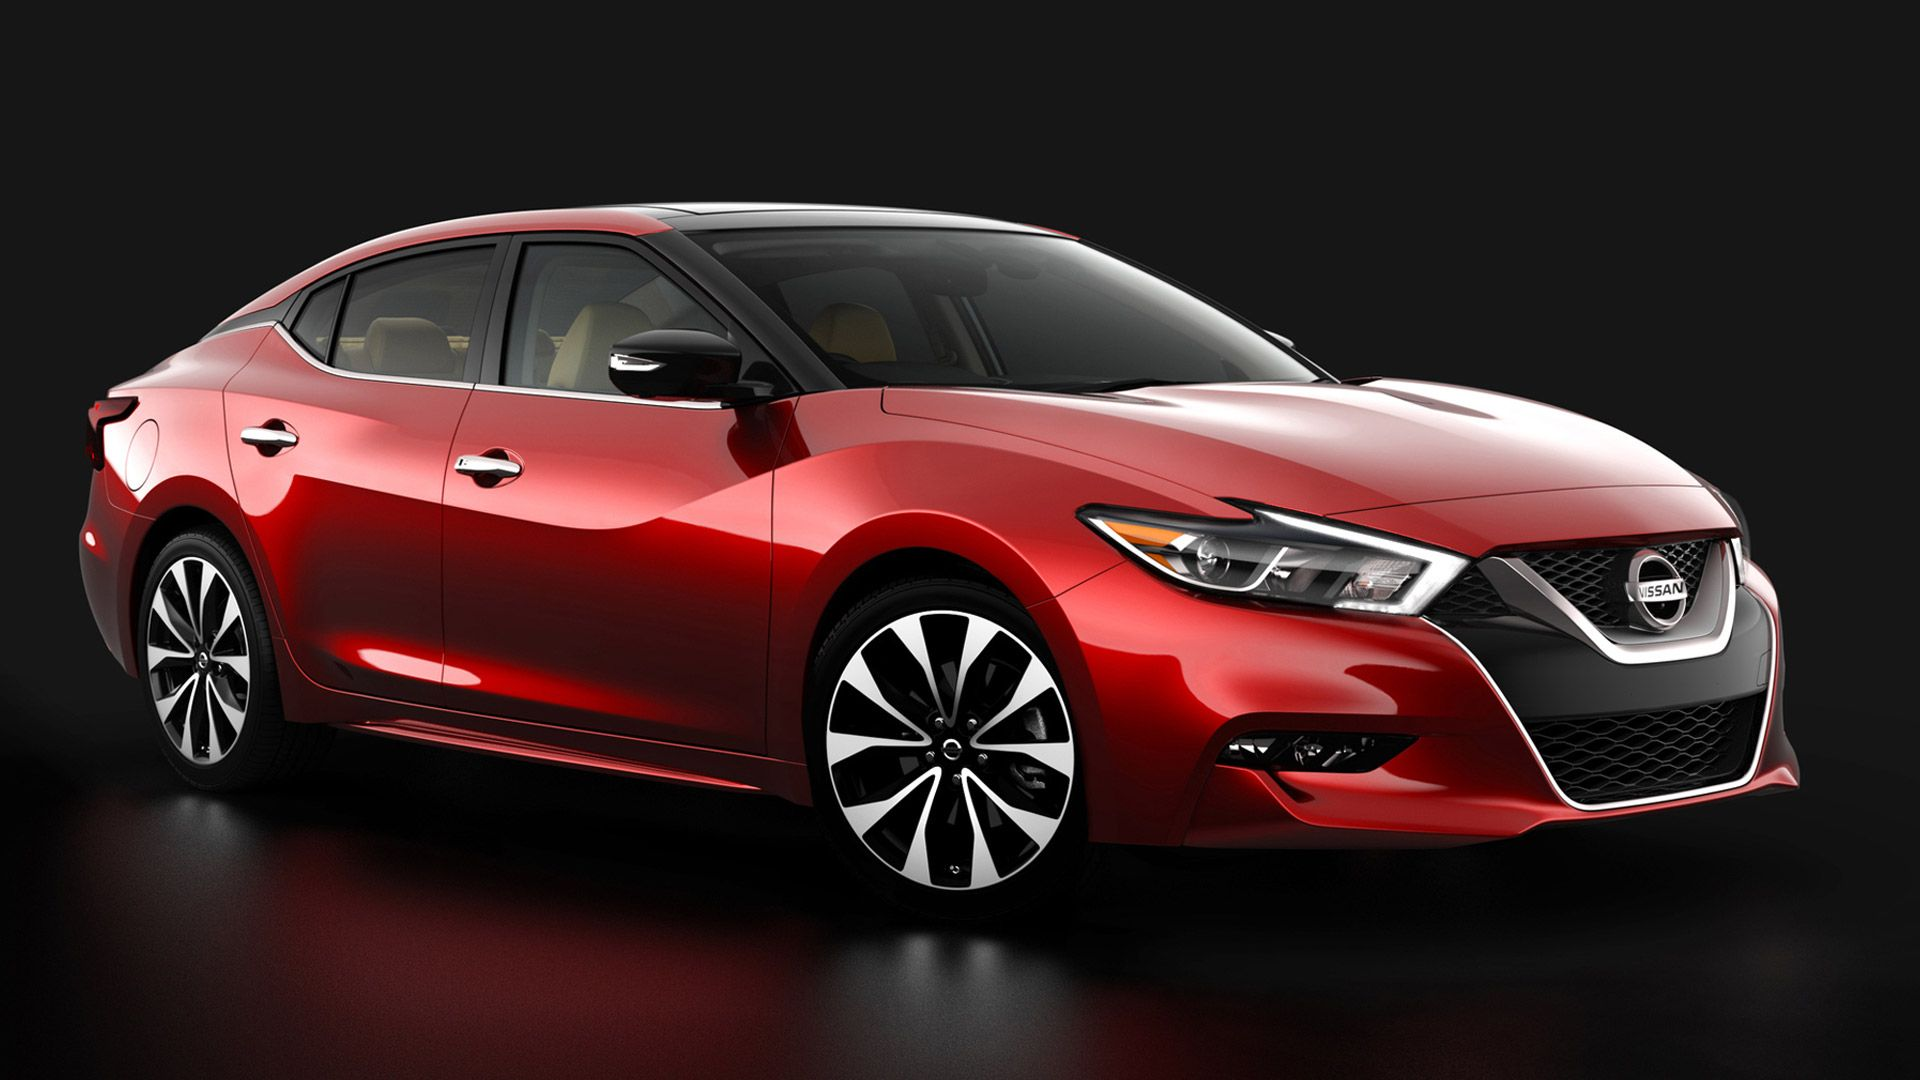 2016 Nissan Maxima Is An Attractive 4 Door Sports Car